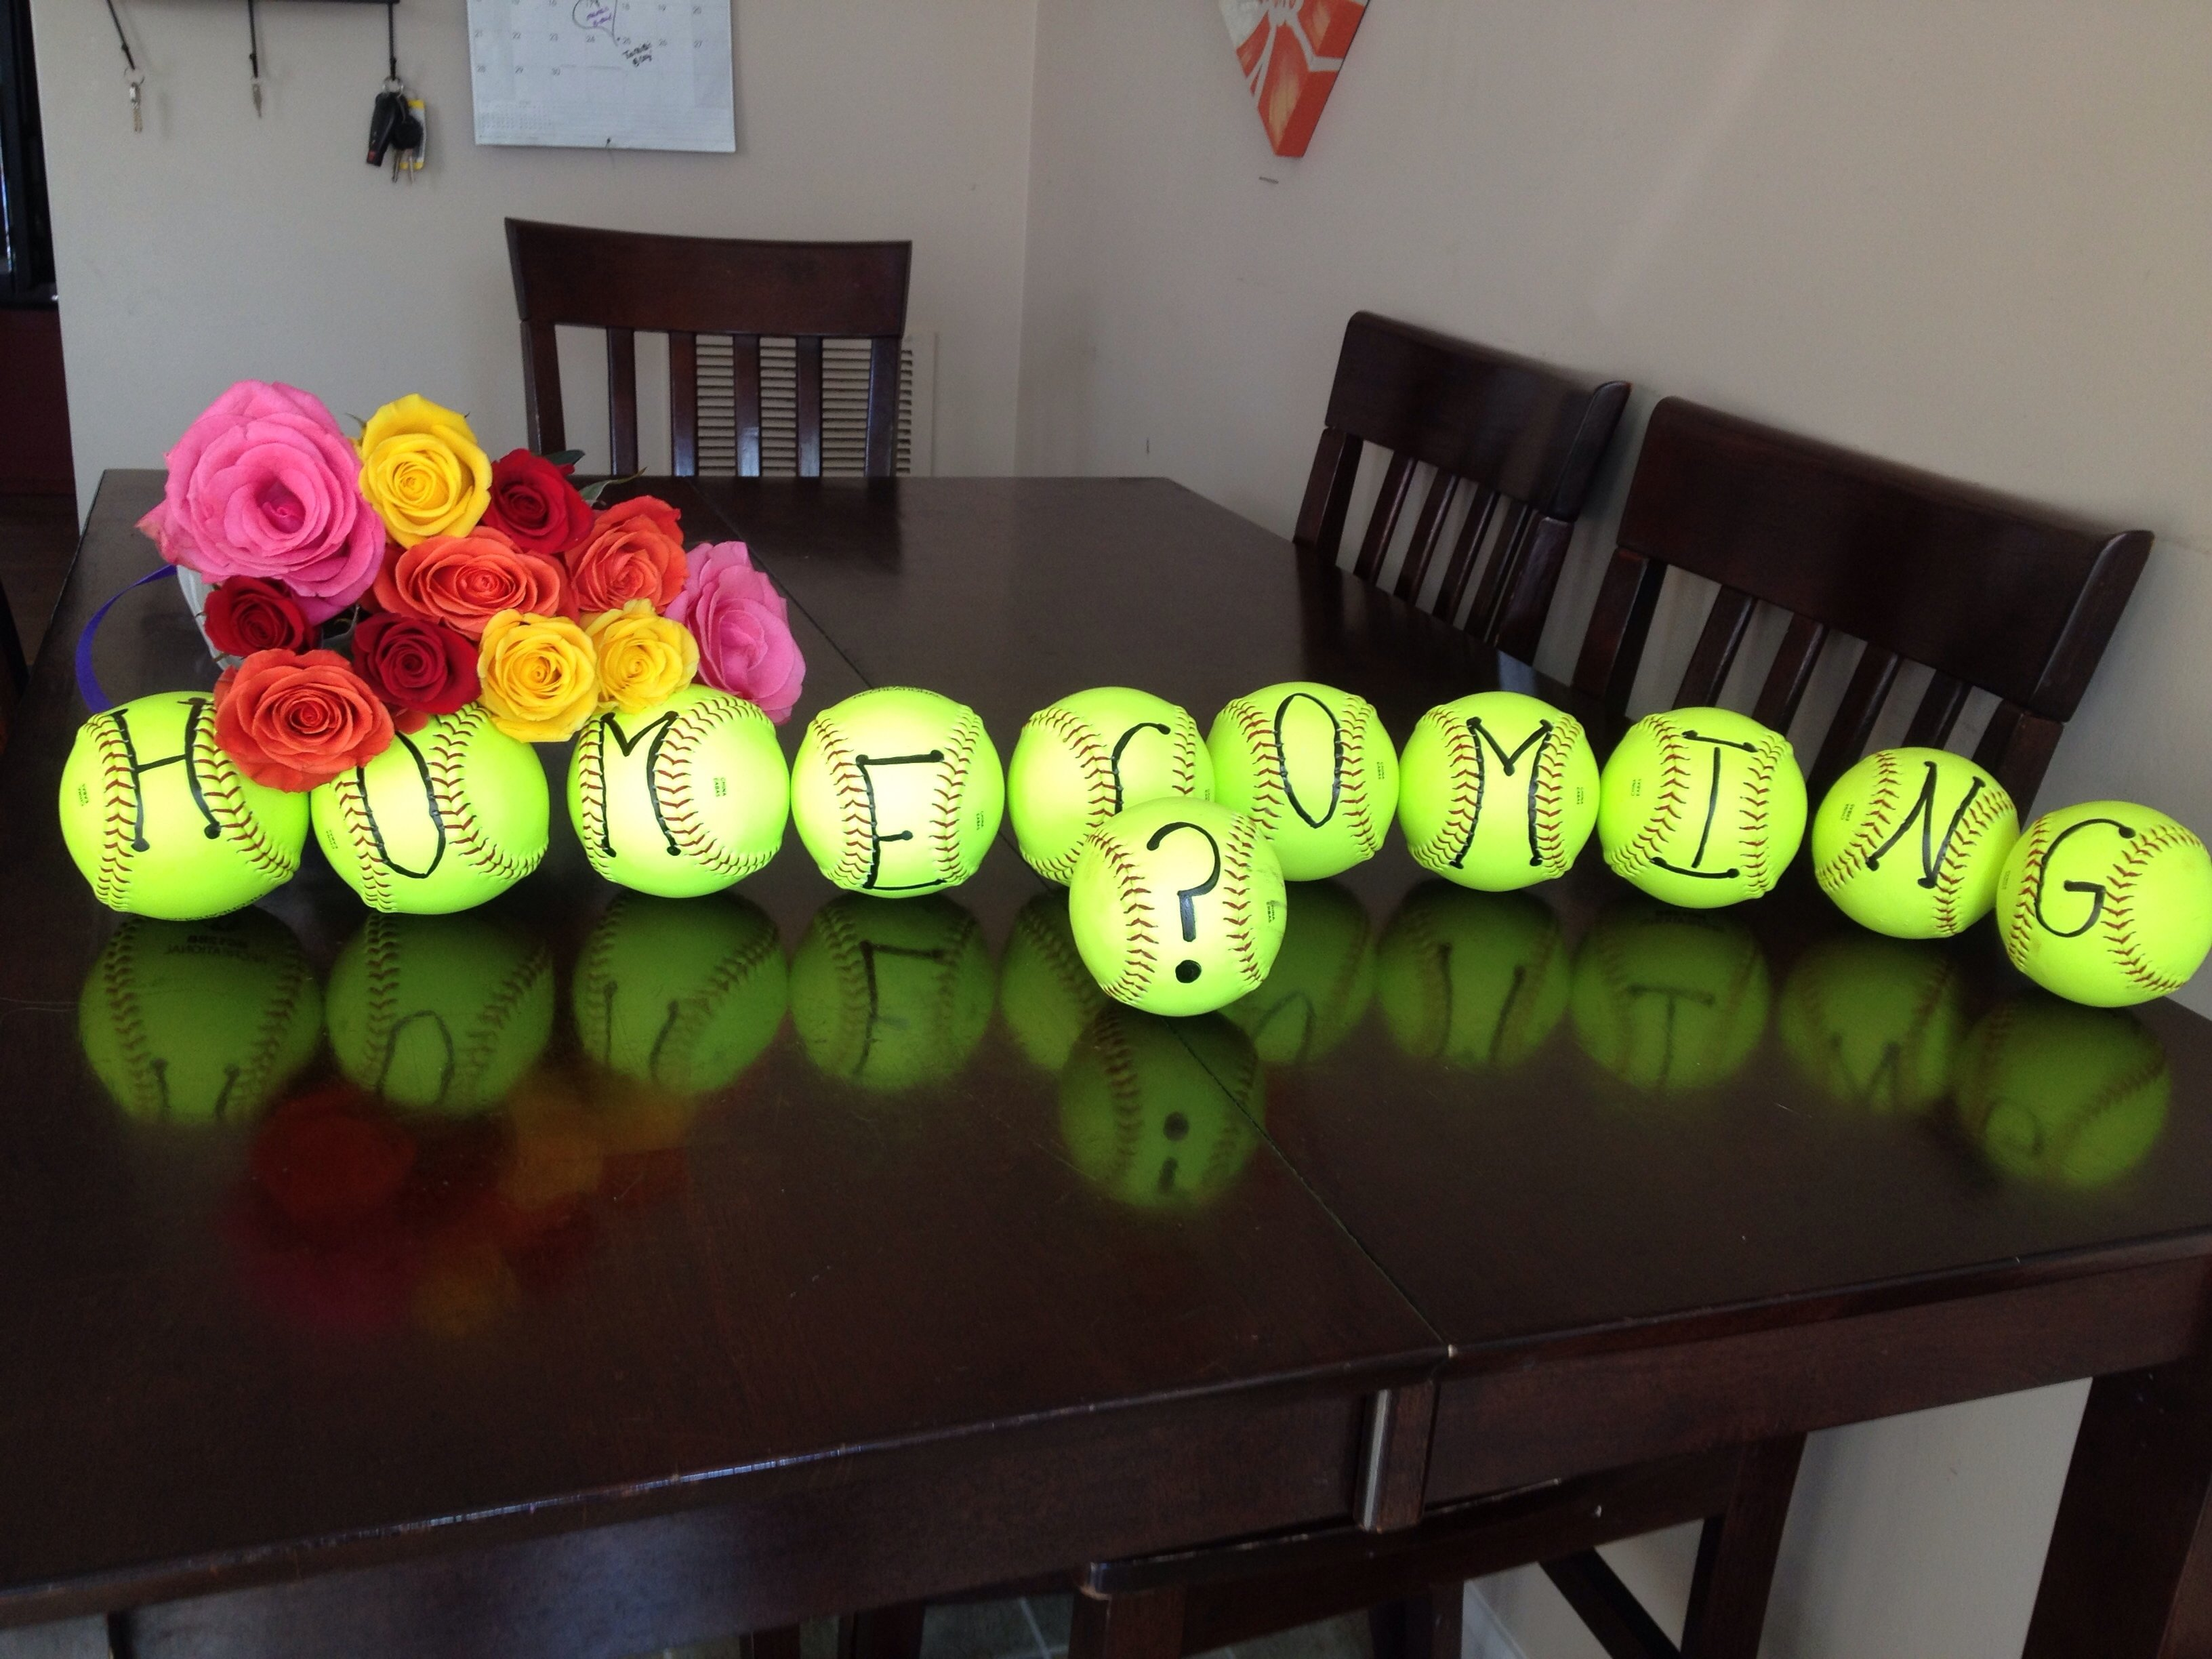 10 Stylish Asking A Girl To Homecoming Ideas cute way to ask a girl to homecoming if she plays softball 2020